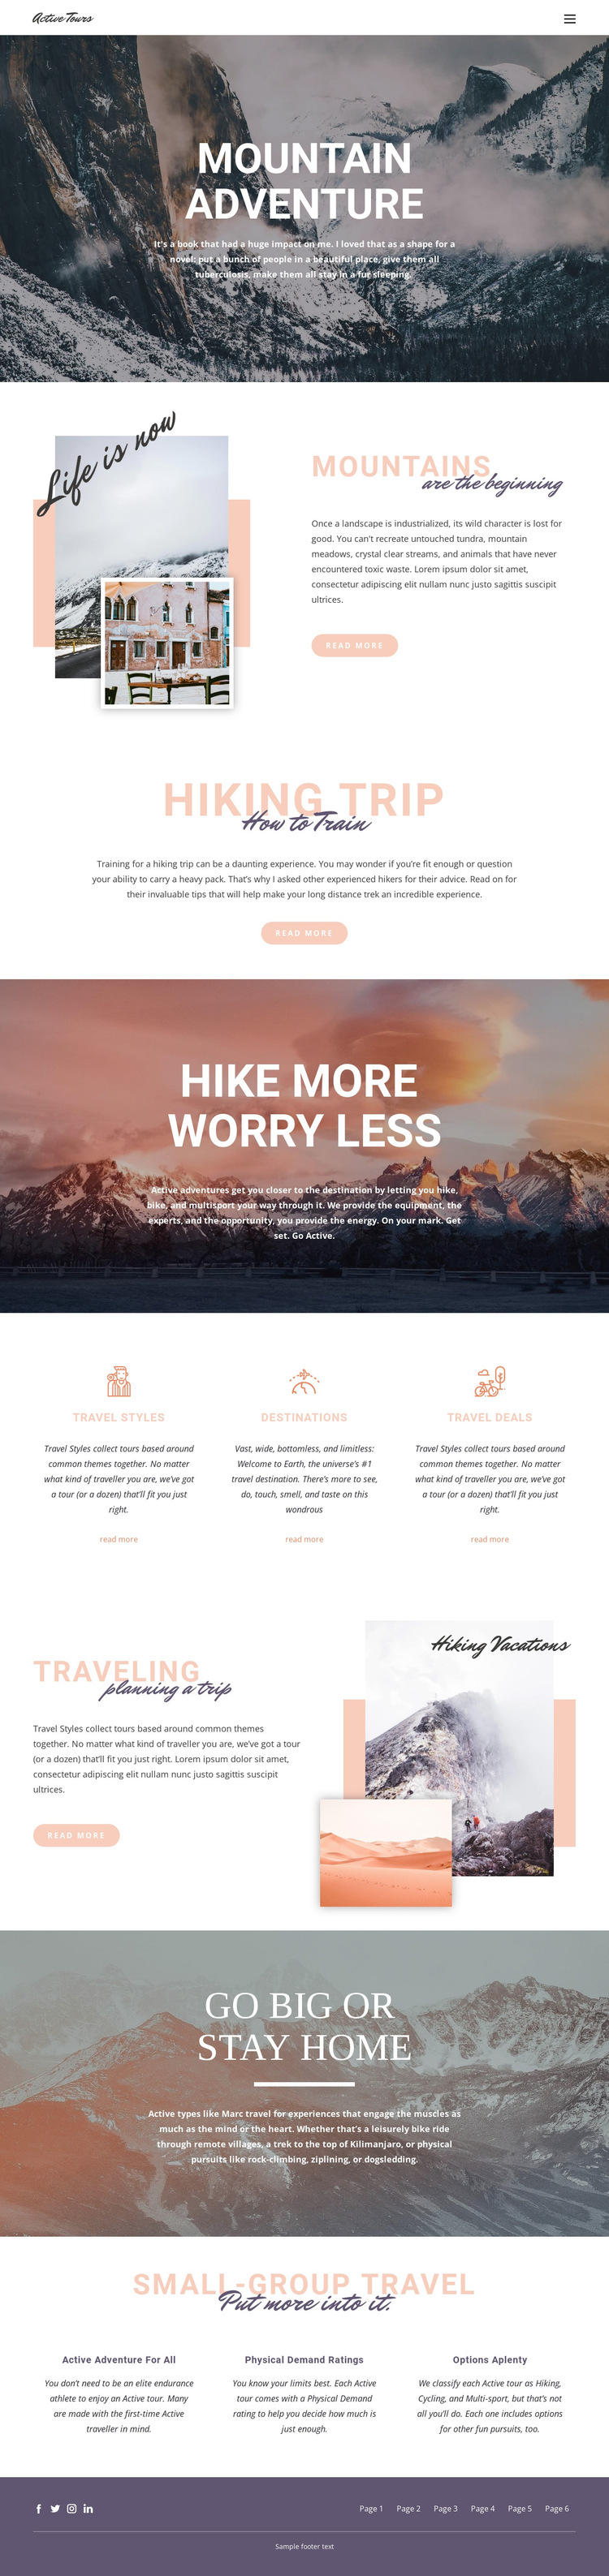 Guided backpacking trips HTML5 Template